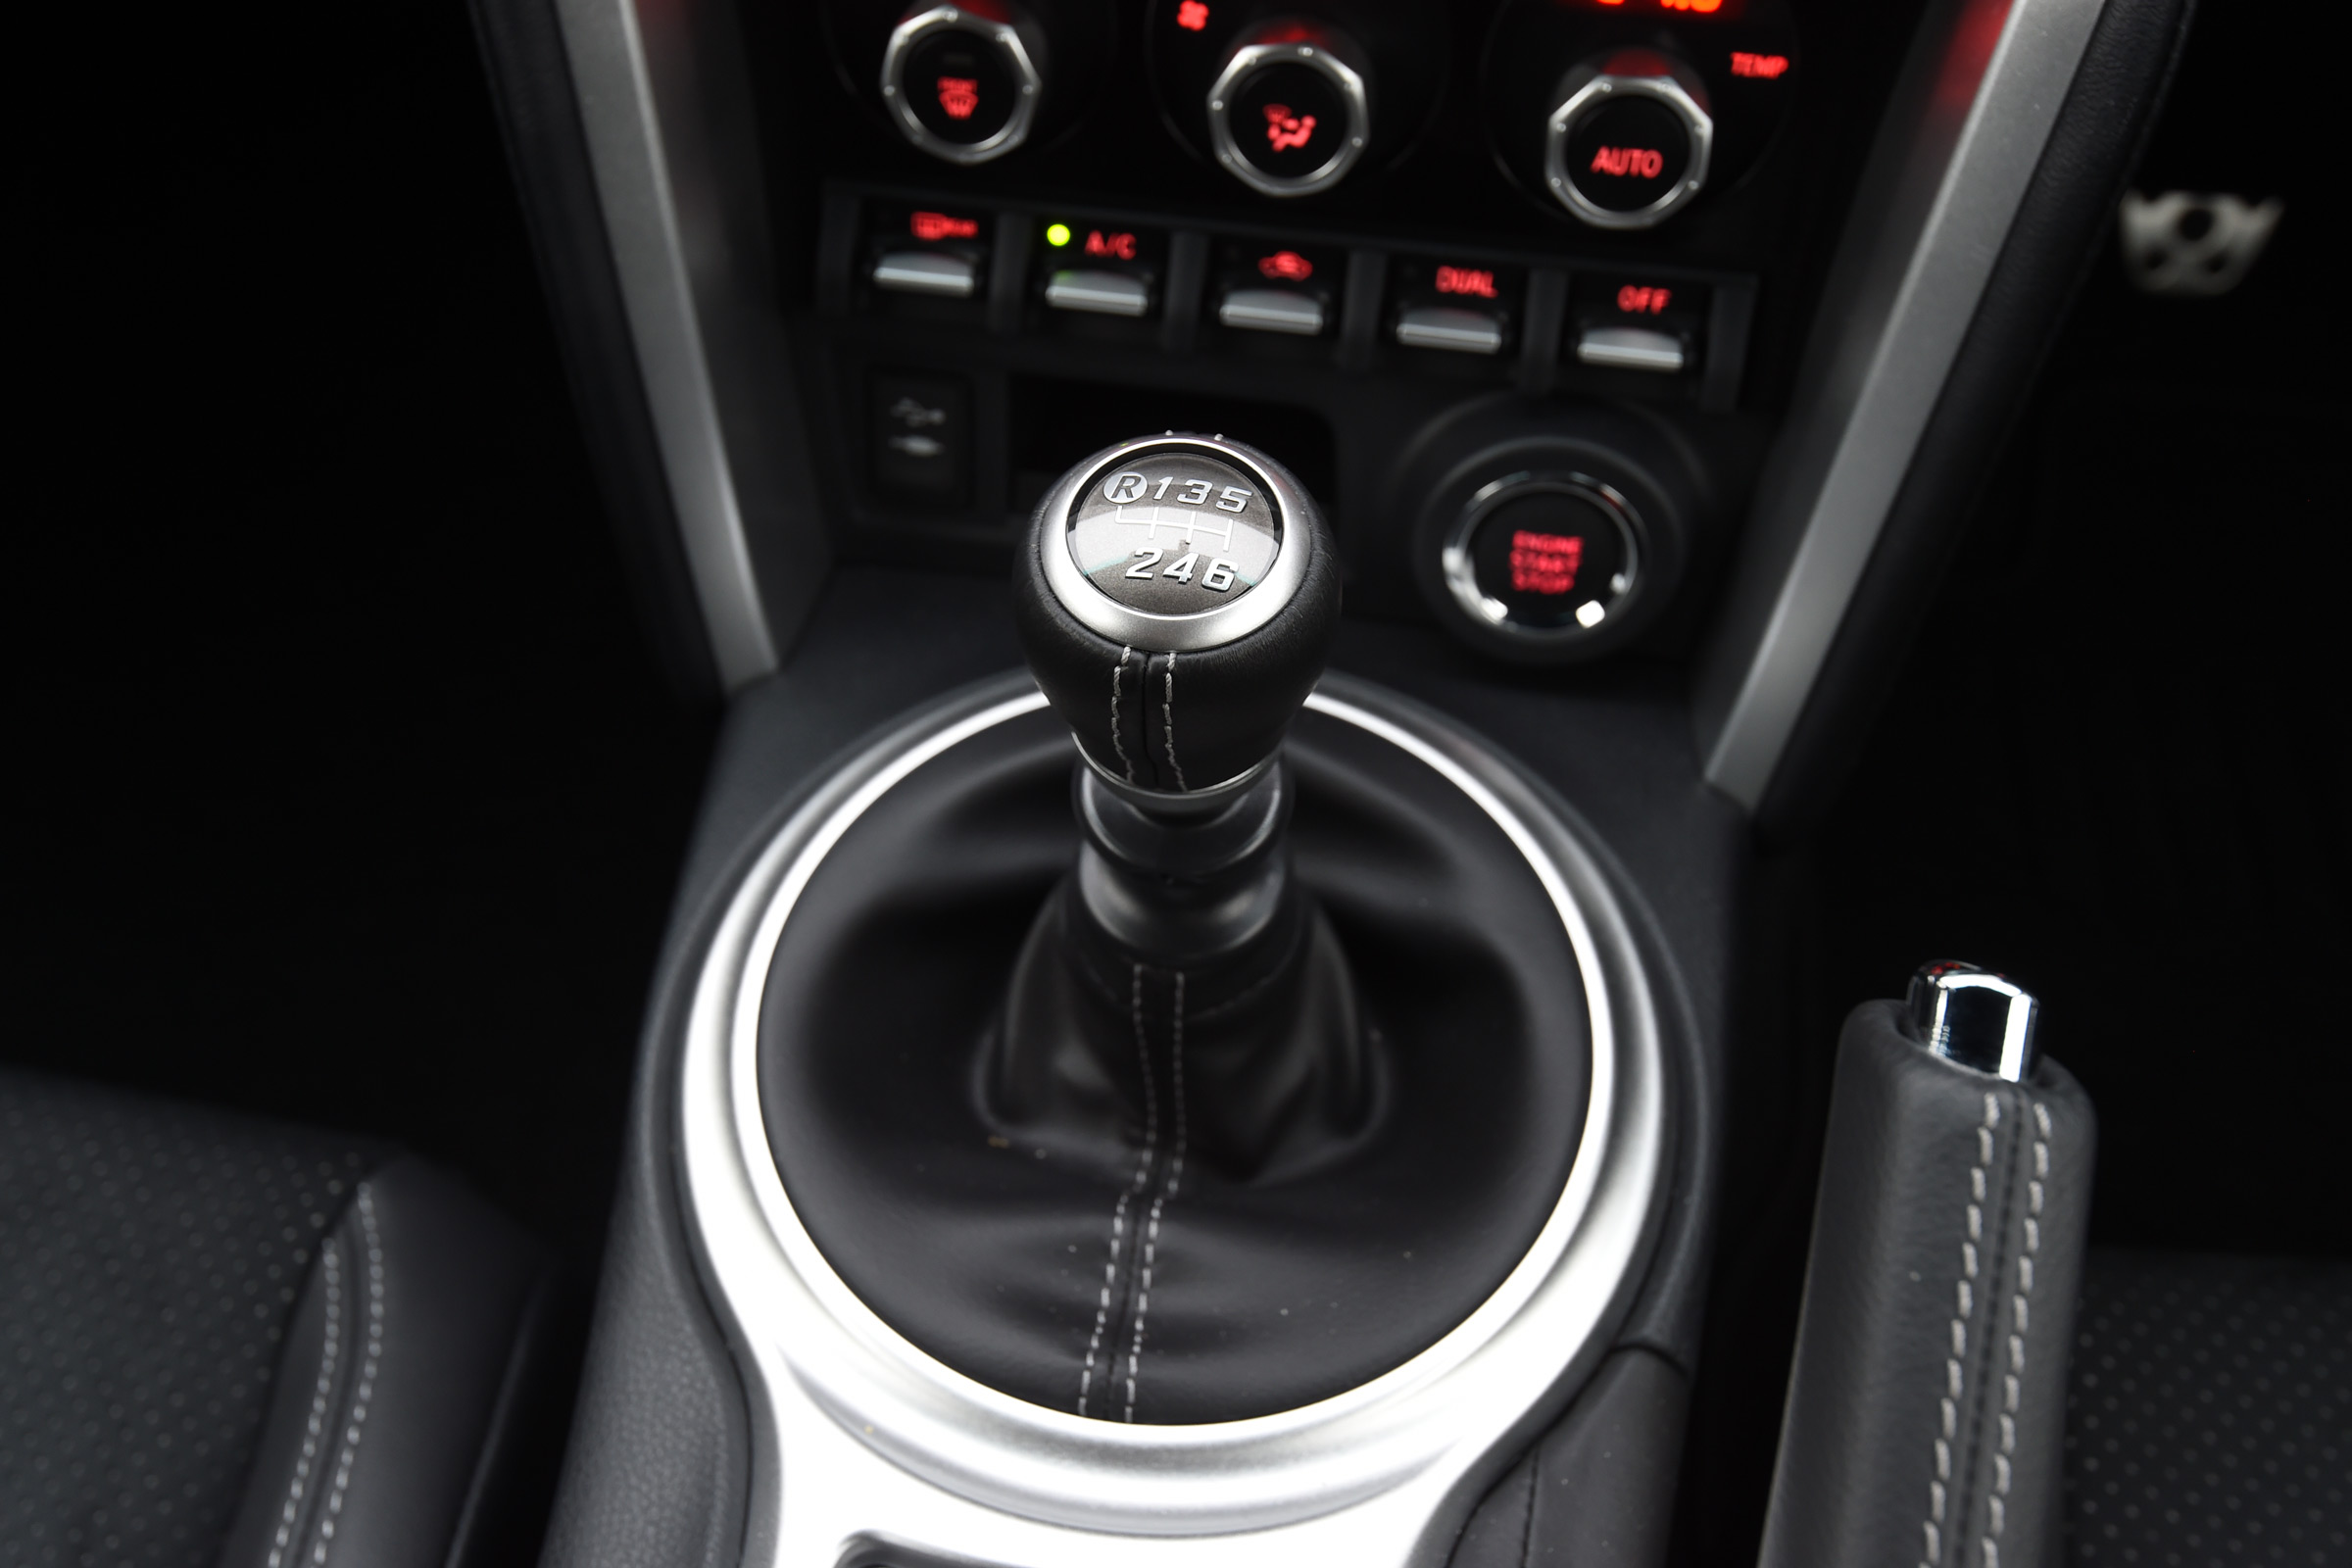 2017 Toyota GT86 Interior View Gear Shift Knob (View 5 of 13)